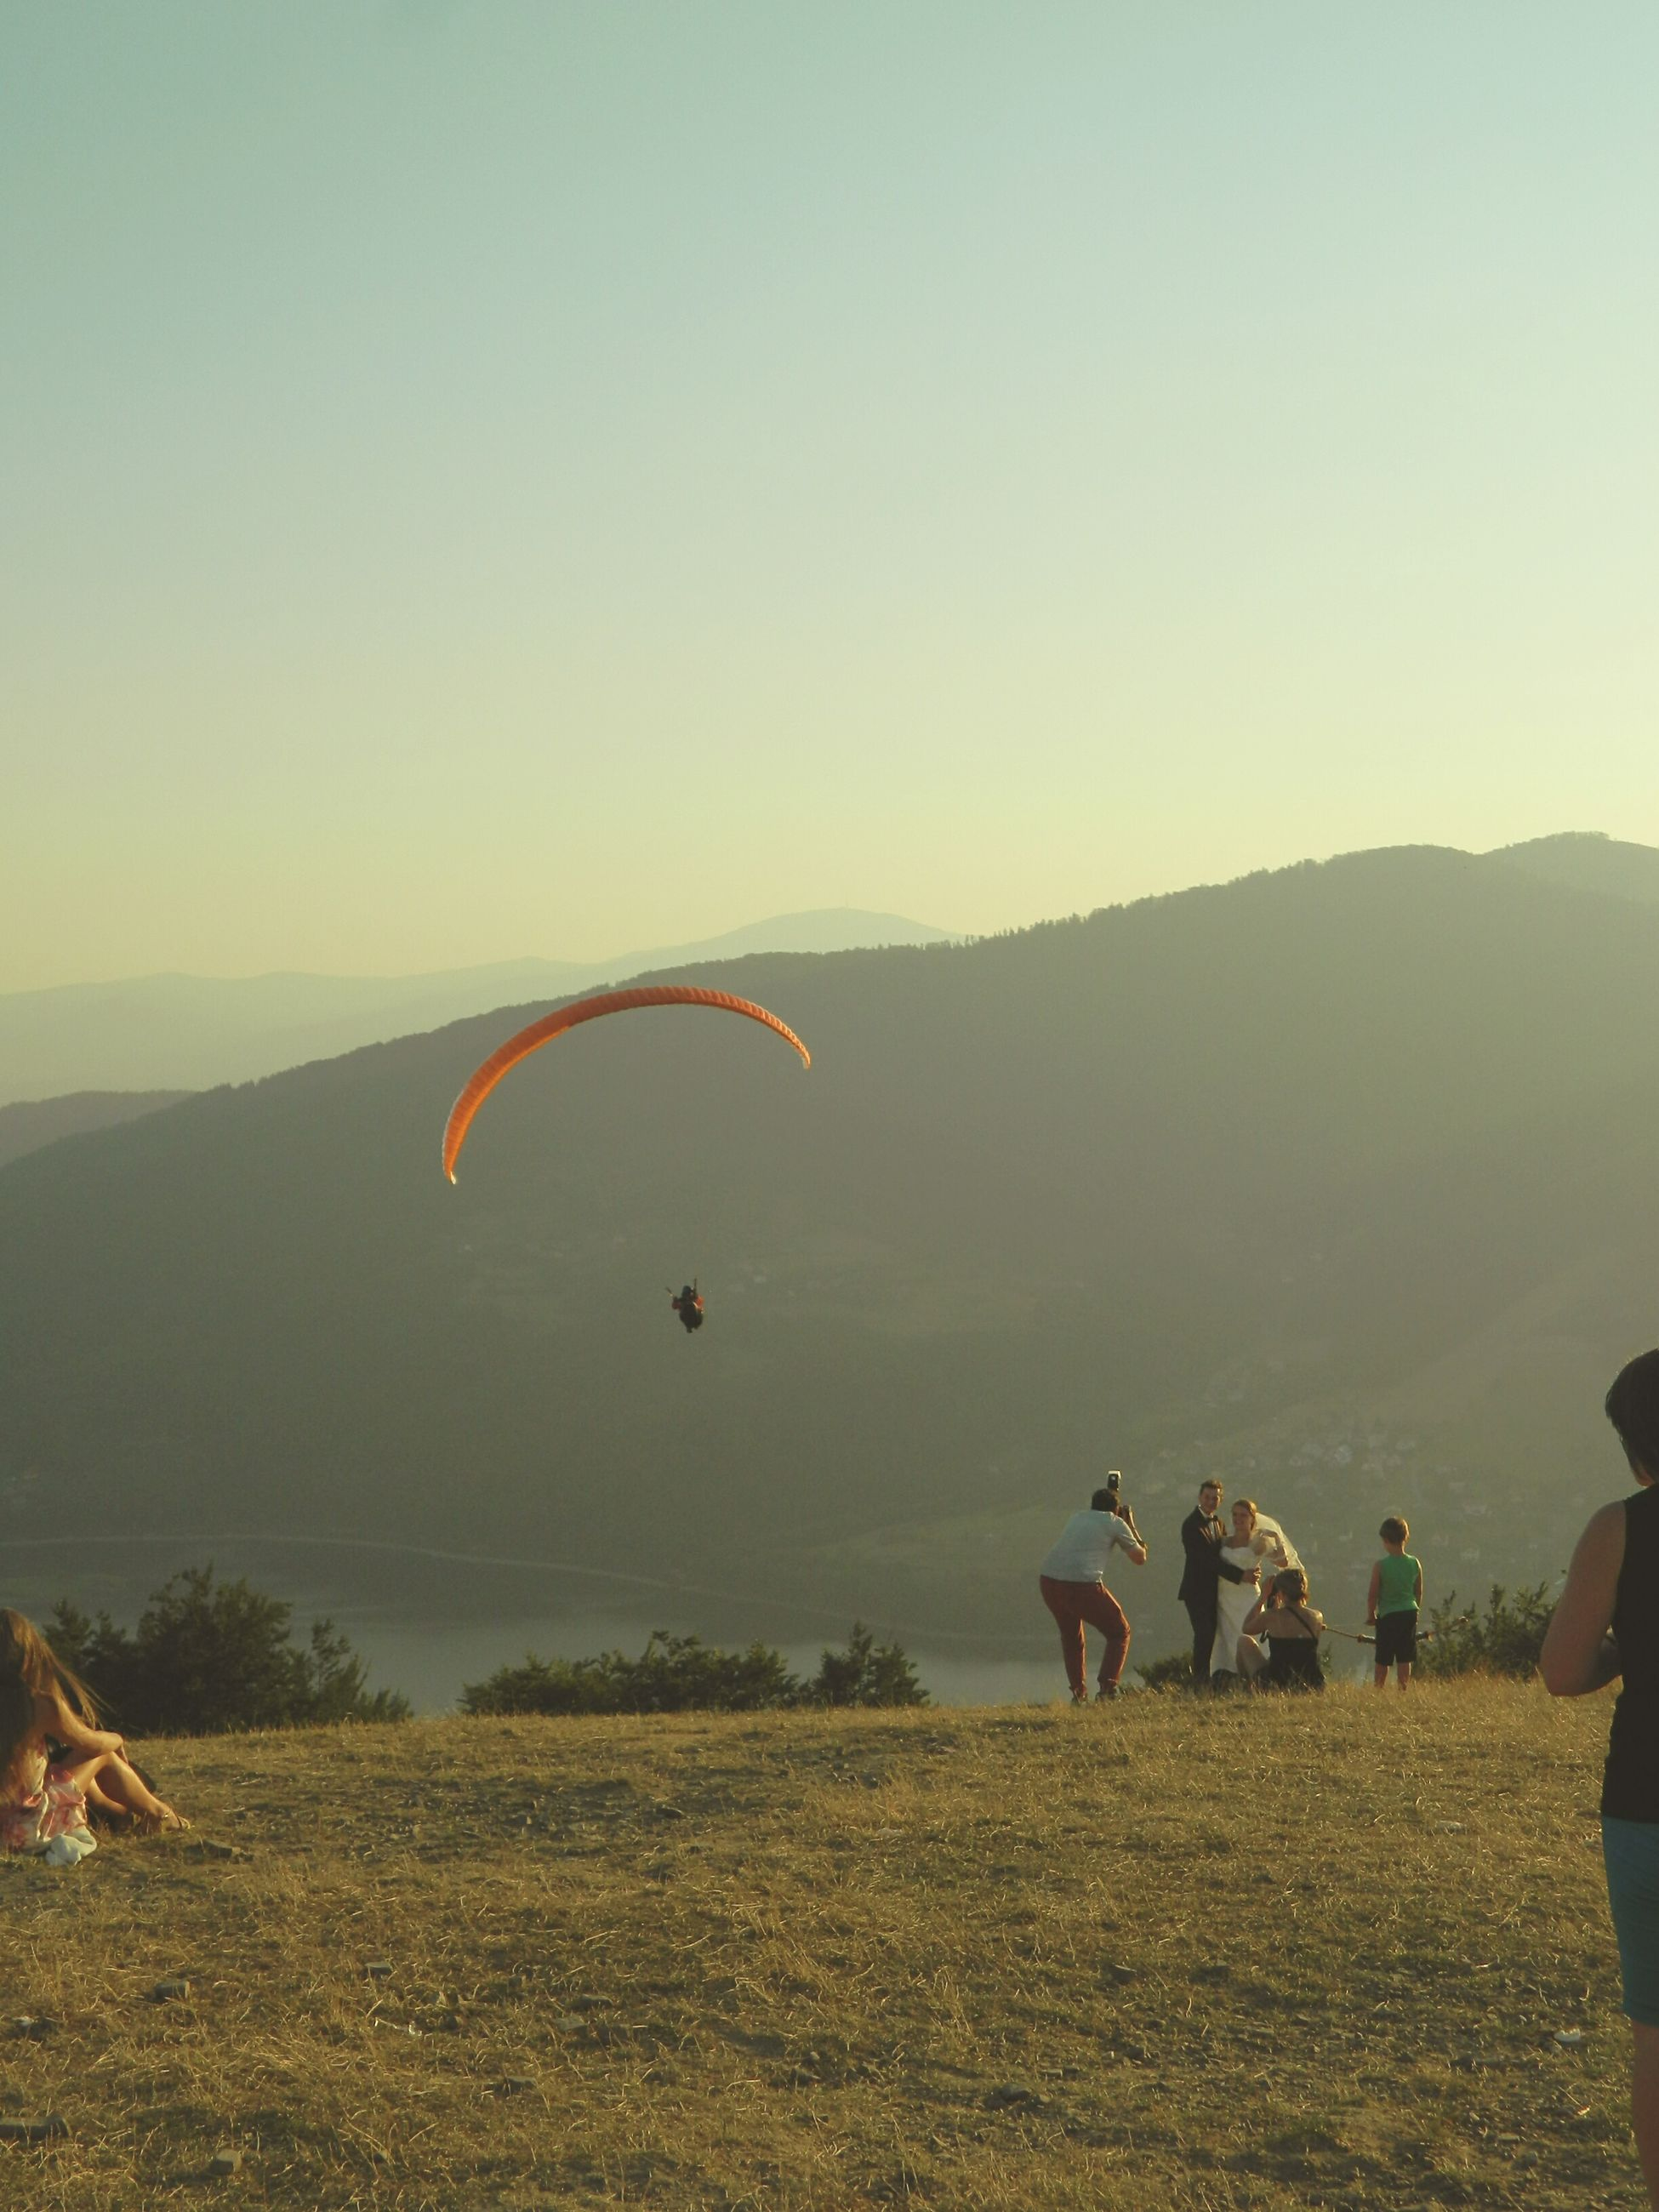 leisure activity, mountain, lifestyles, men, landscape, scenics, tranquil scene, clear sky, adventure, unrecognizable person, copy space, tranquility, nature, sky, beauty in nature, flying, parachute, extreme sports